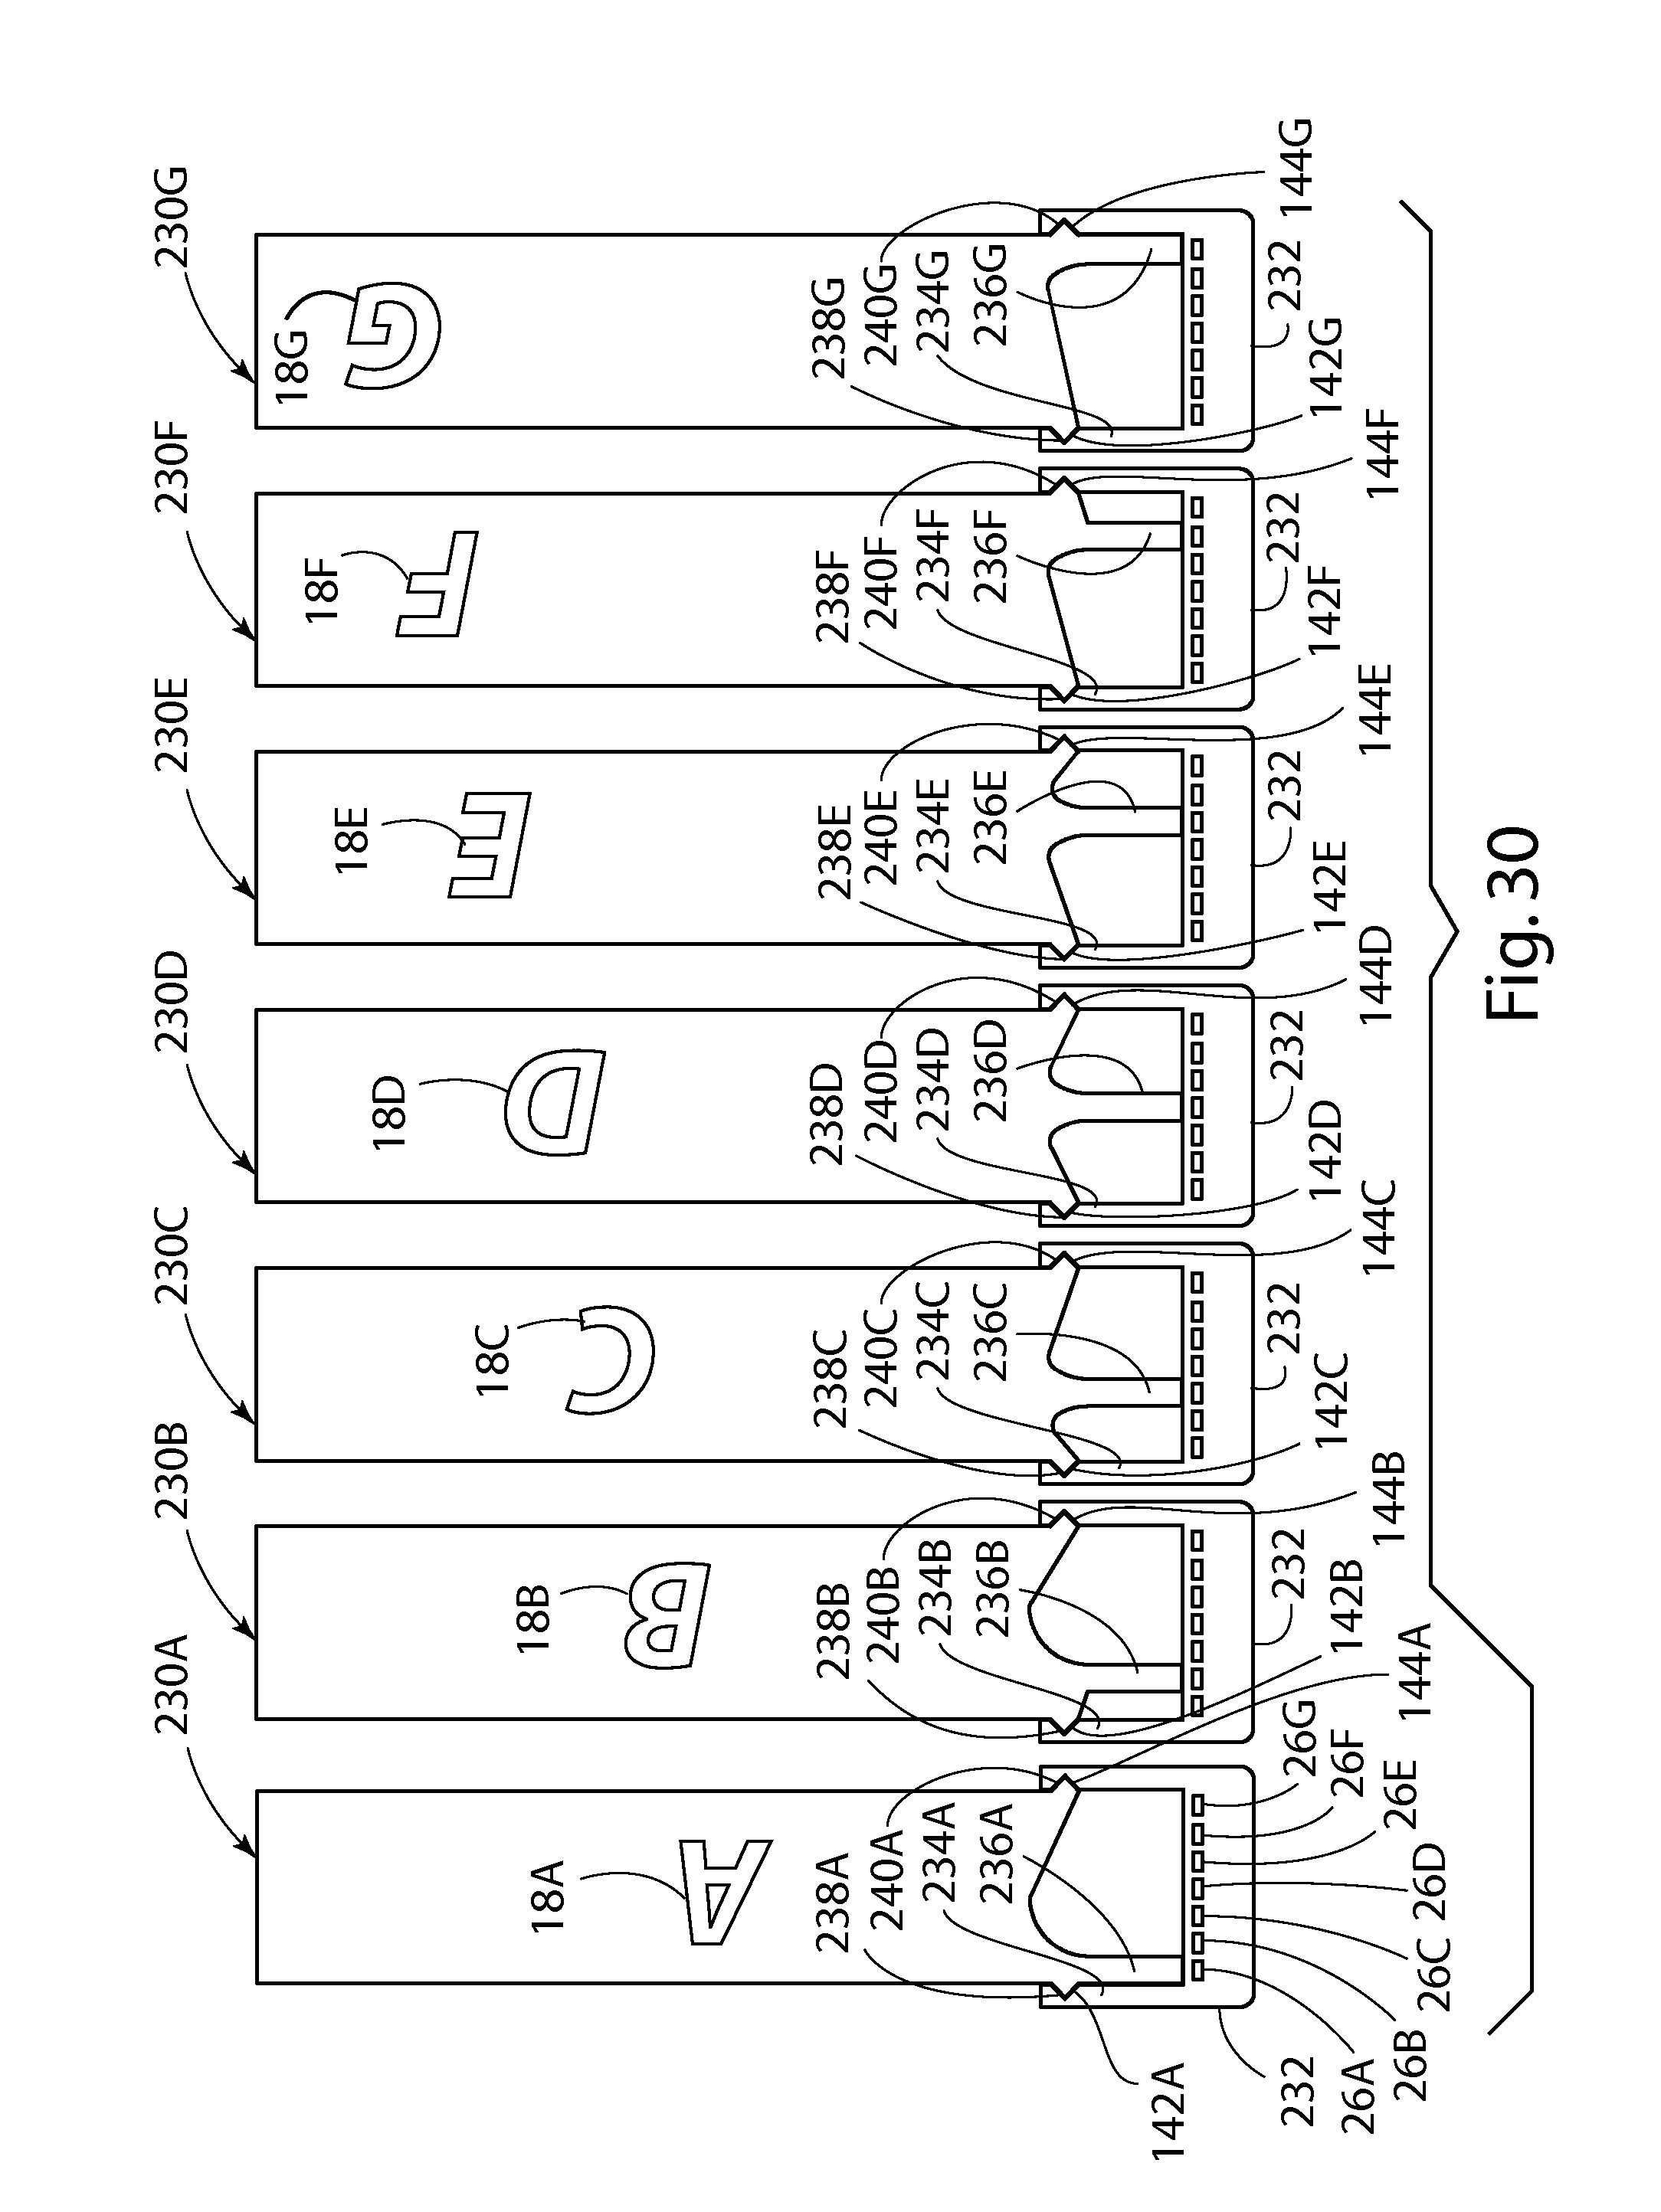 Patent Us 9022631 B2 Ac Wiring Diagram 230e 1986 Circuit And 0 Petitions